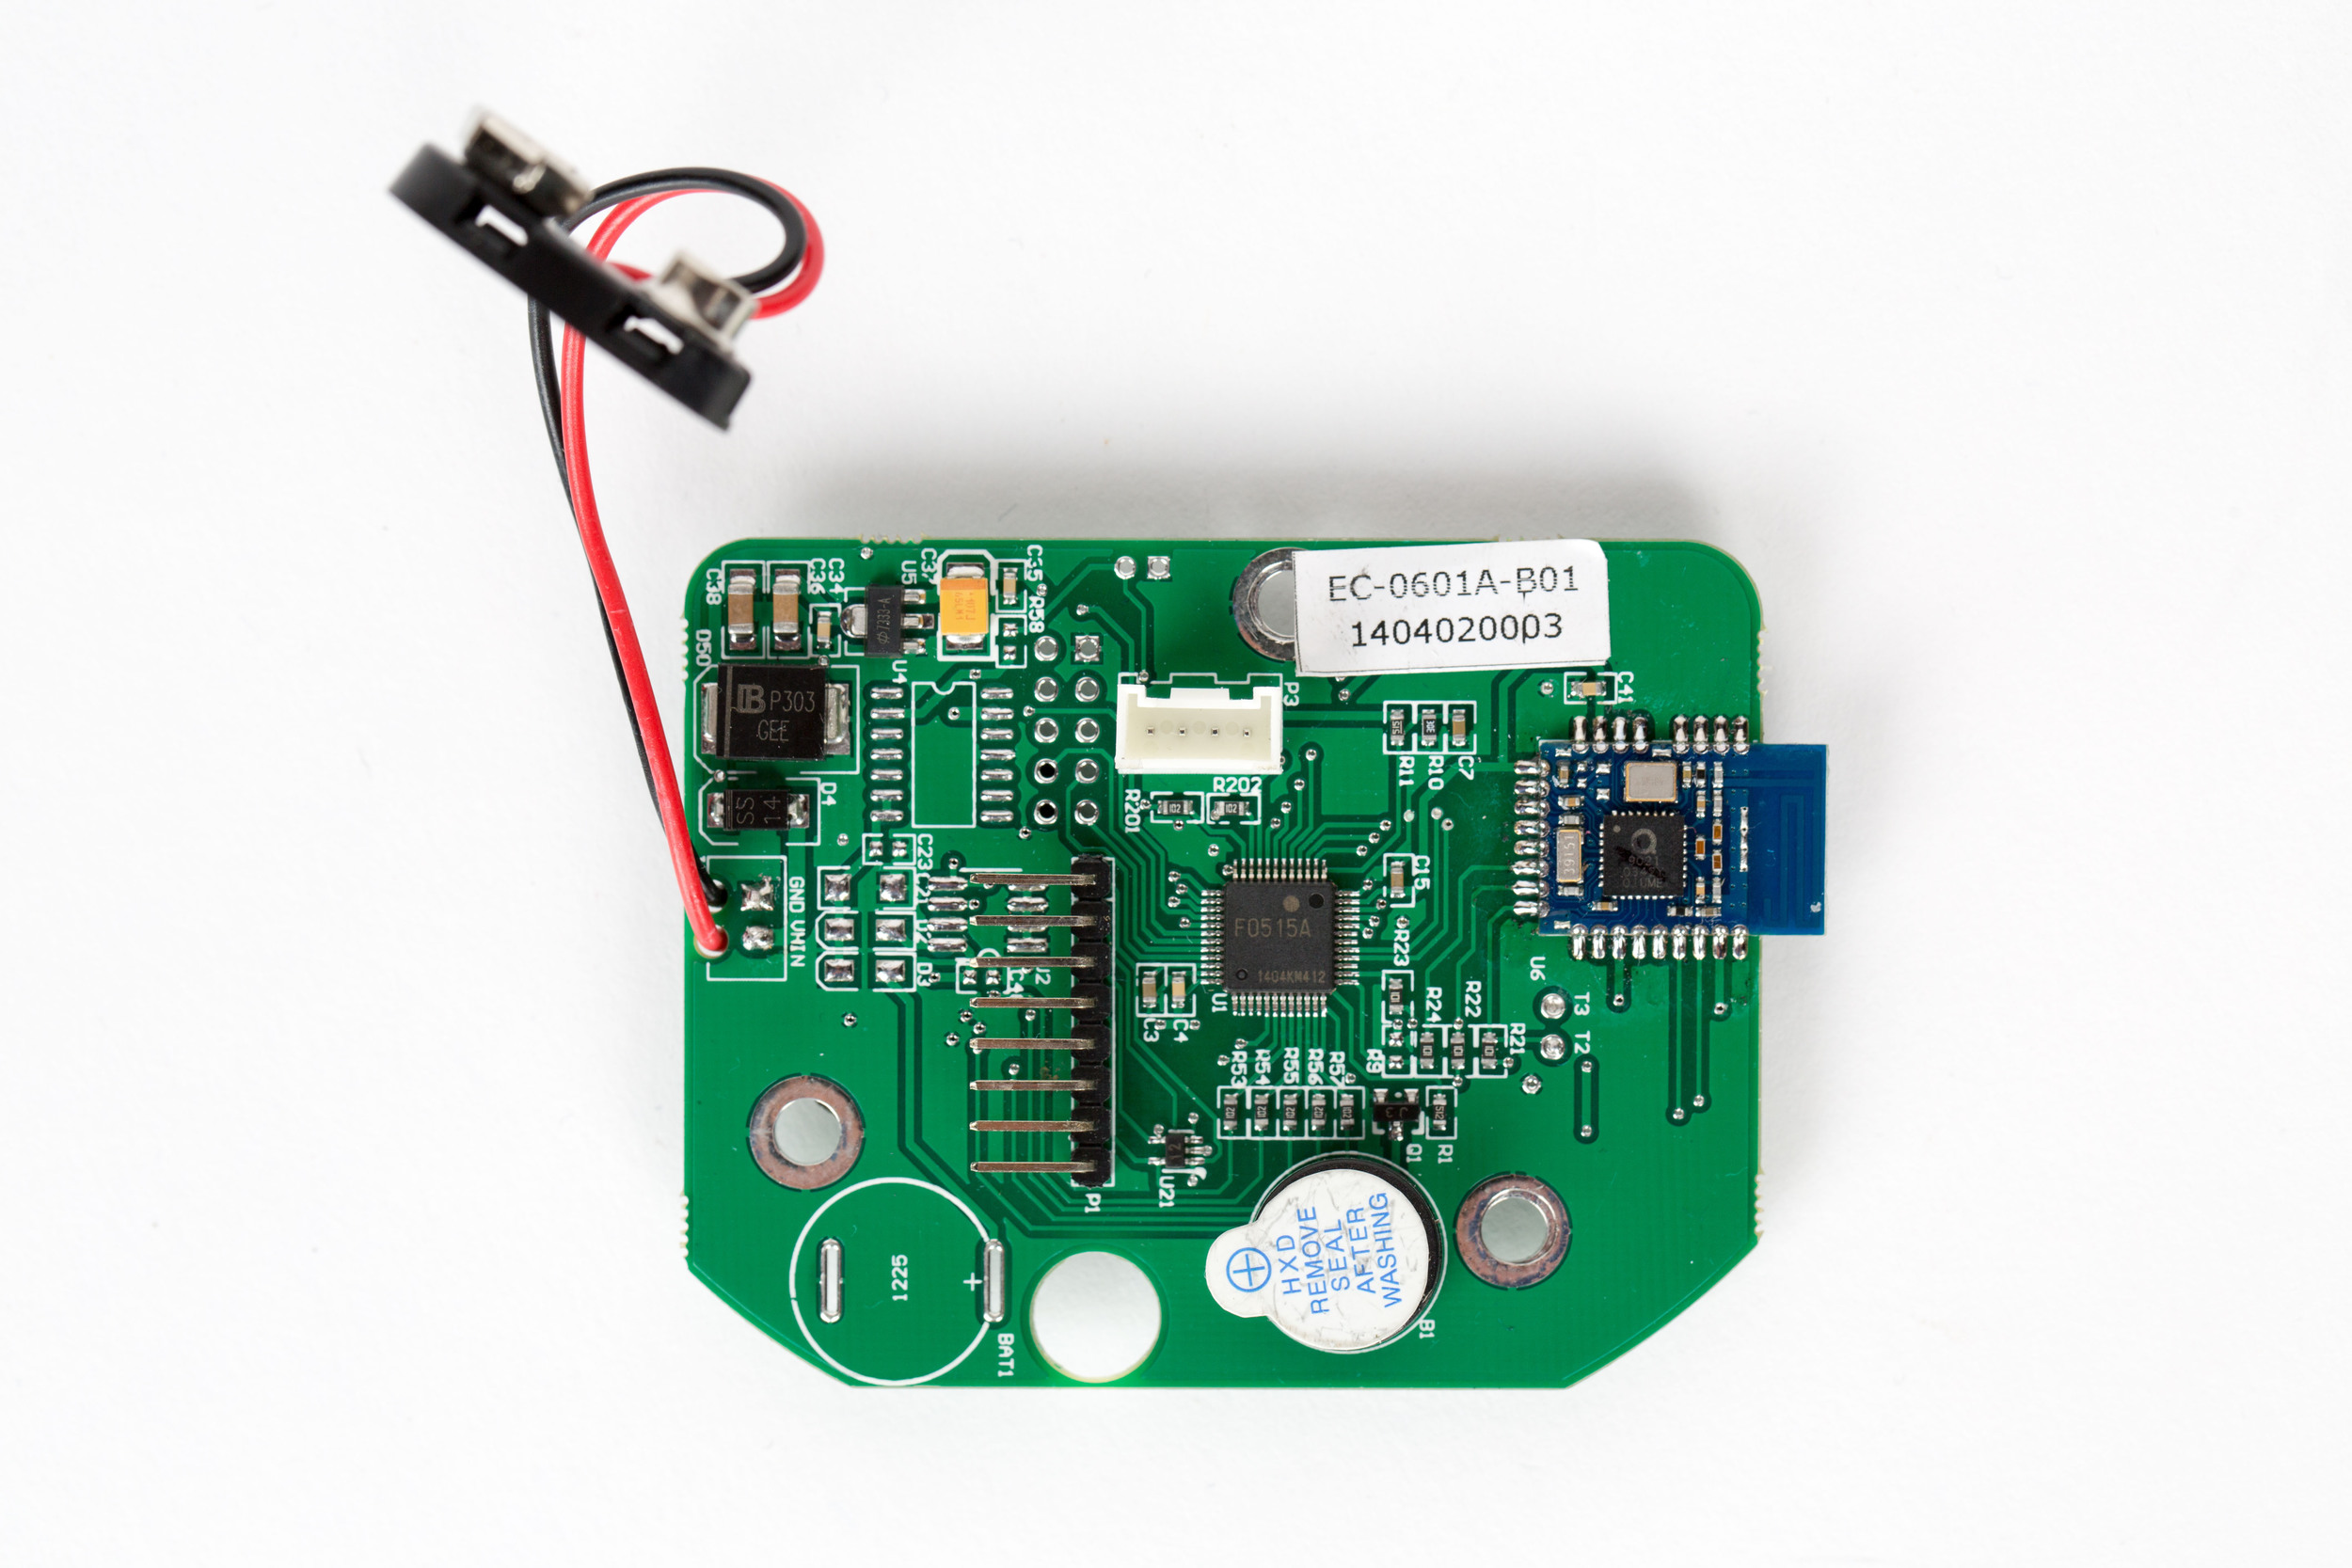 Back side of the entry pad is where the board's main MCU, a    Renesas μPD78F0515A (U1)   , can be found. It's accompanied with an    NXP QN902X SoC (U6)    for BLE communication. Peripherals, such as the 8-pin keypad header (P1) and 4-pin serial interface (P3; ref above) to the lock-body are also located on this side. This serial interface is both used for communication and to carry power to the lock body. There are unpopulated footprints (U2, U4, BAT1), which may have been used in previous revisions of this board, for debugging purposes, or other models of this entry pad.